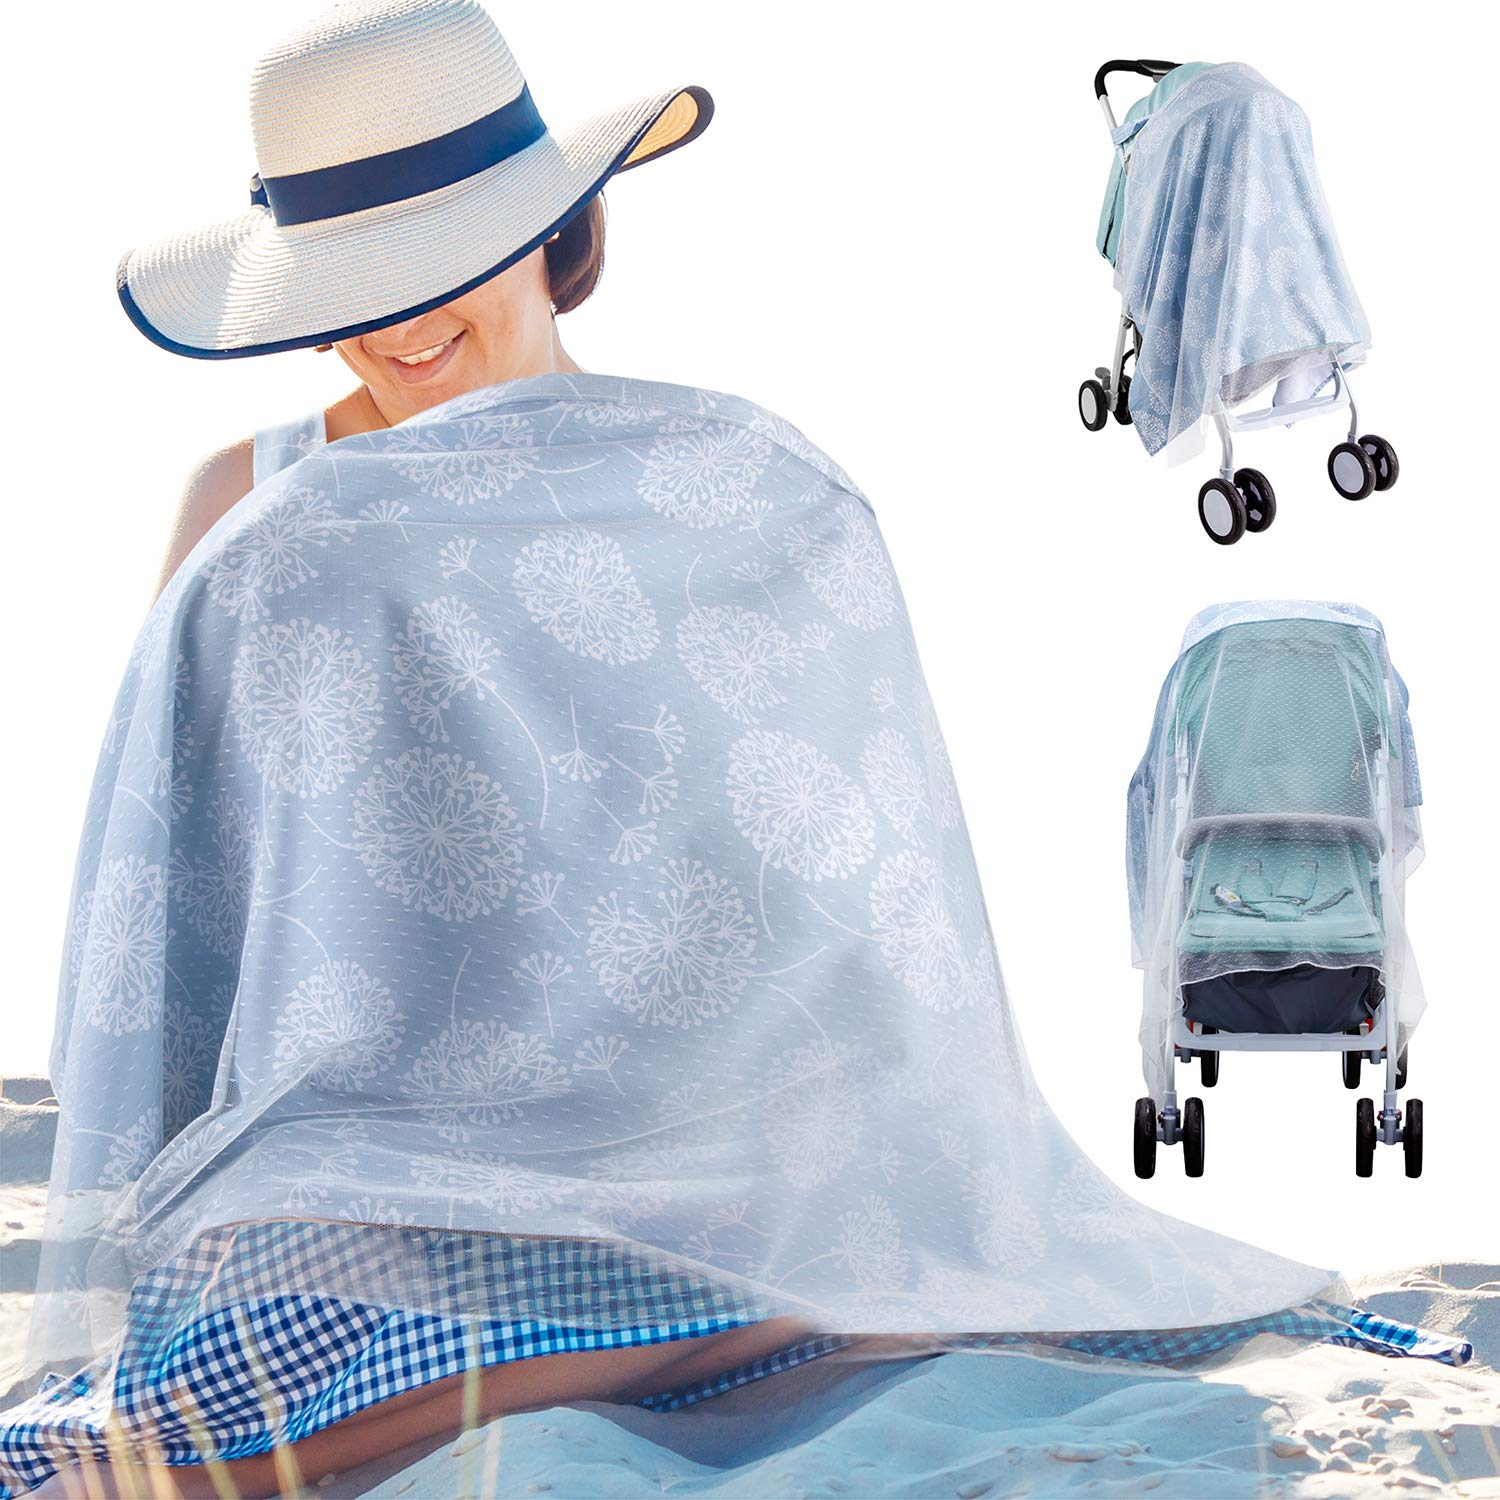 Adjustable Strap Large Size Nursing Apron for Breast Feeding Covers Ups Lightweight Breathable Cotton Privacy Feeding Cover with Built-in Burp Cloth Nursing Cover for Breastfeeding Babies